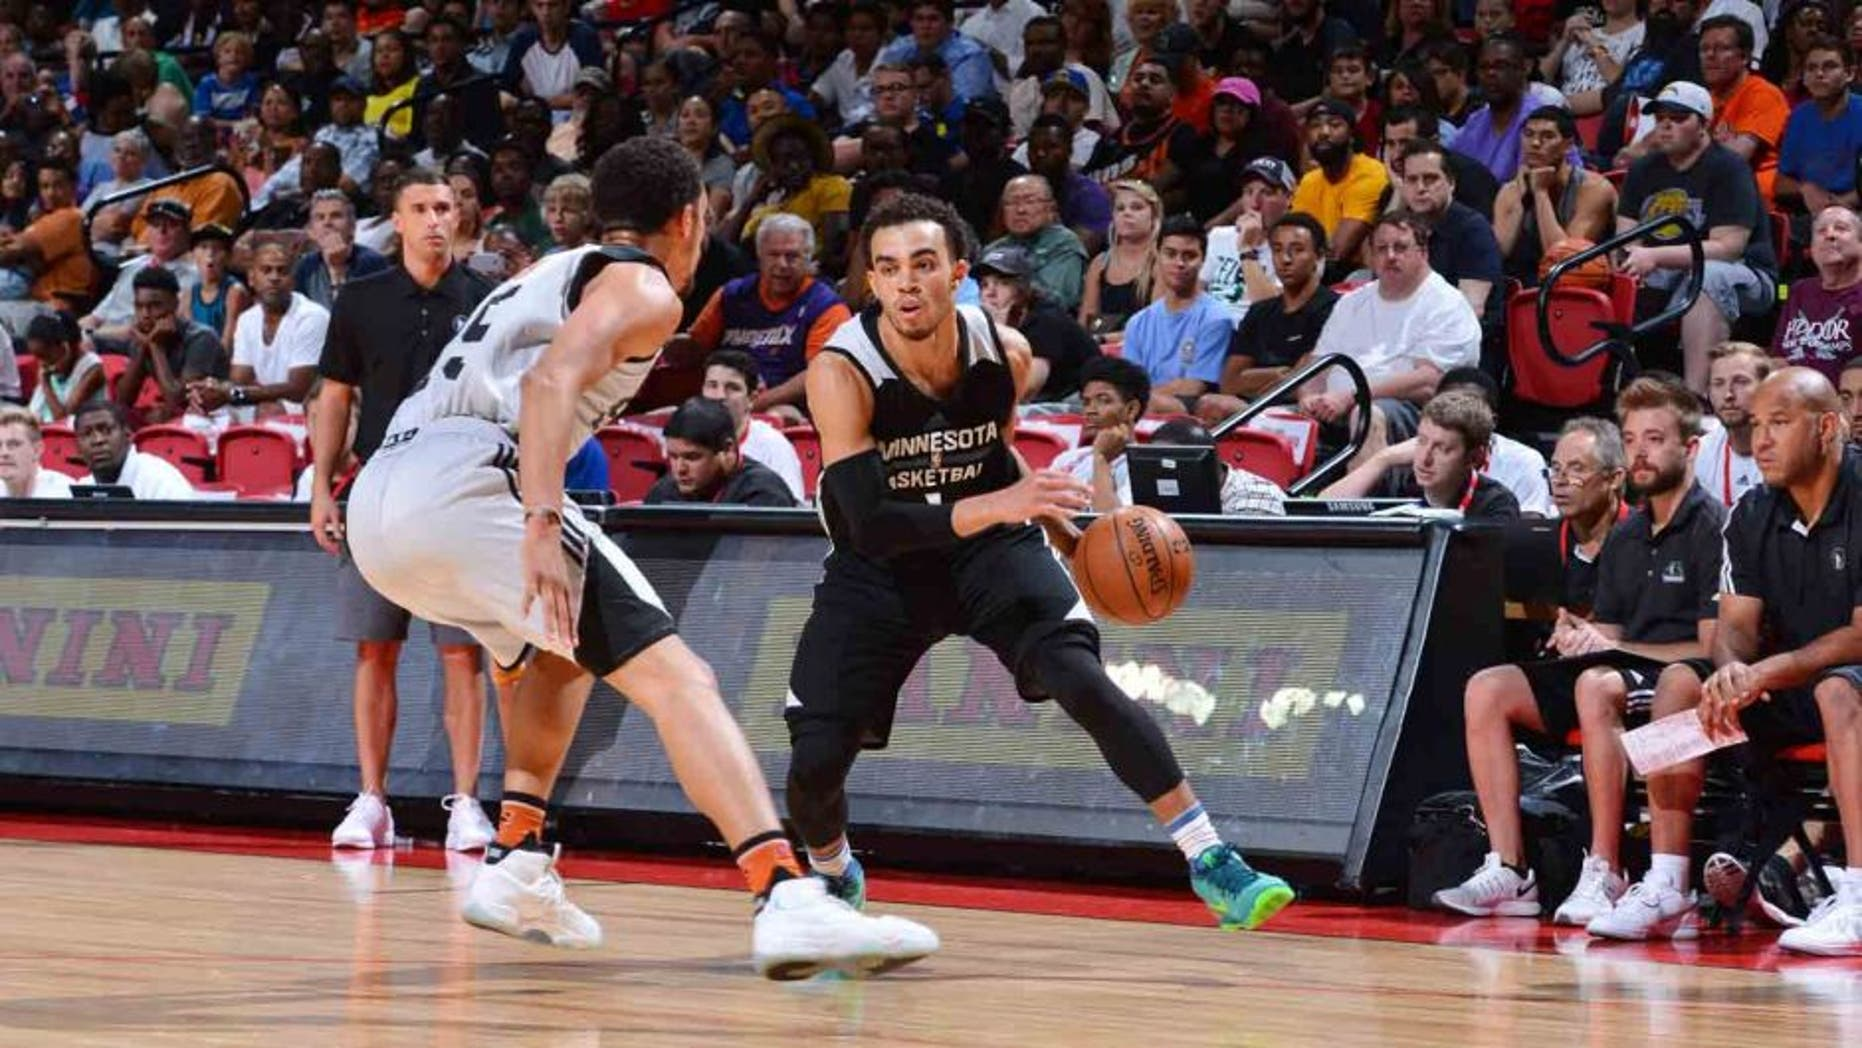 The Minnesota Timberwolves' Tyus Jones handles the ball against the Phoenix Suns during a 2016 NBA Las Vegas Summer League tournament semifinal game July 17, 2016, at the Thomas & Mack Center in Las Vegas.